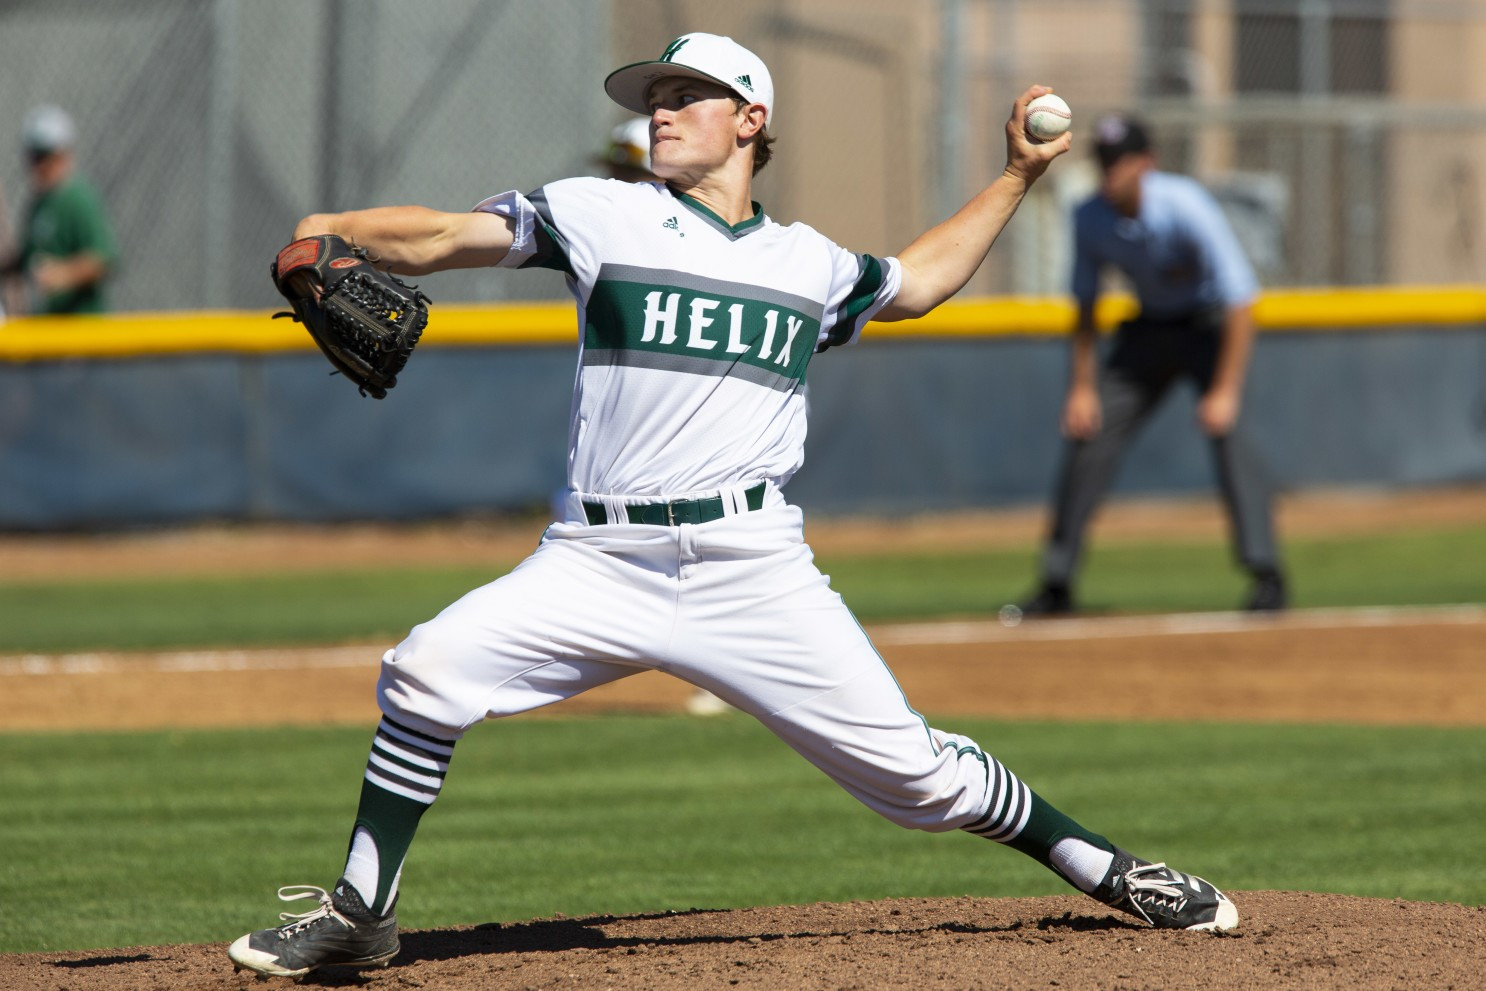 Baseball Pitching Charts Professional Helix Senior Can Throw Baseball Either Way the San Diego